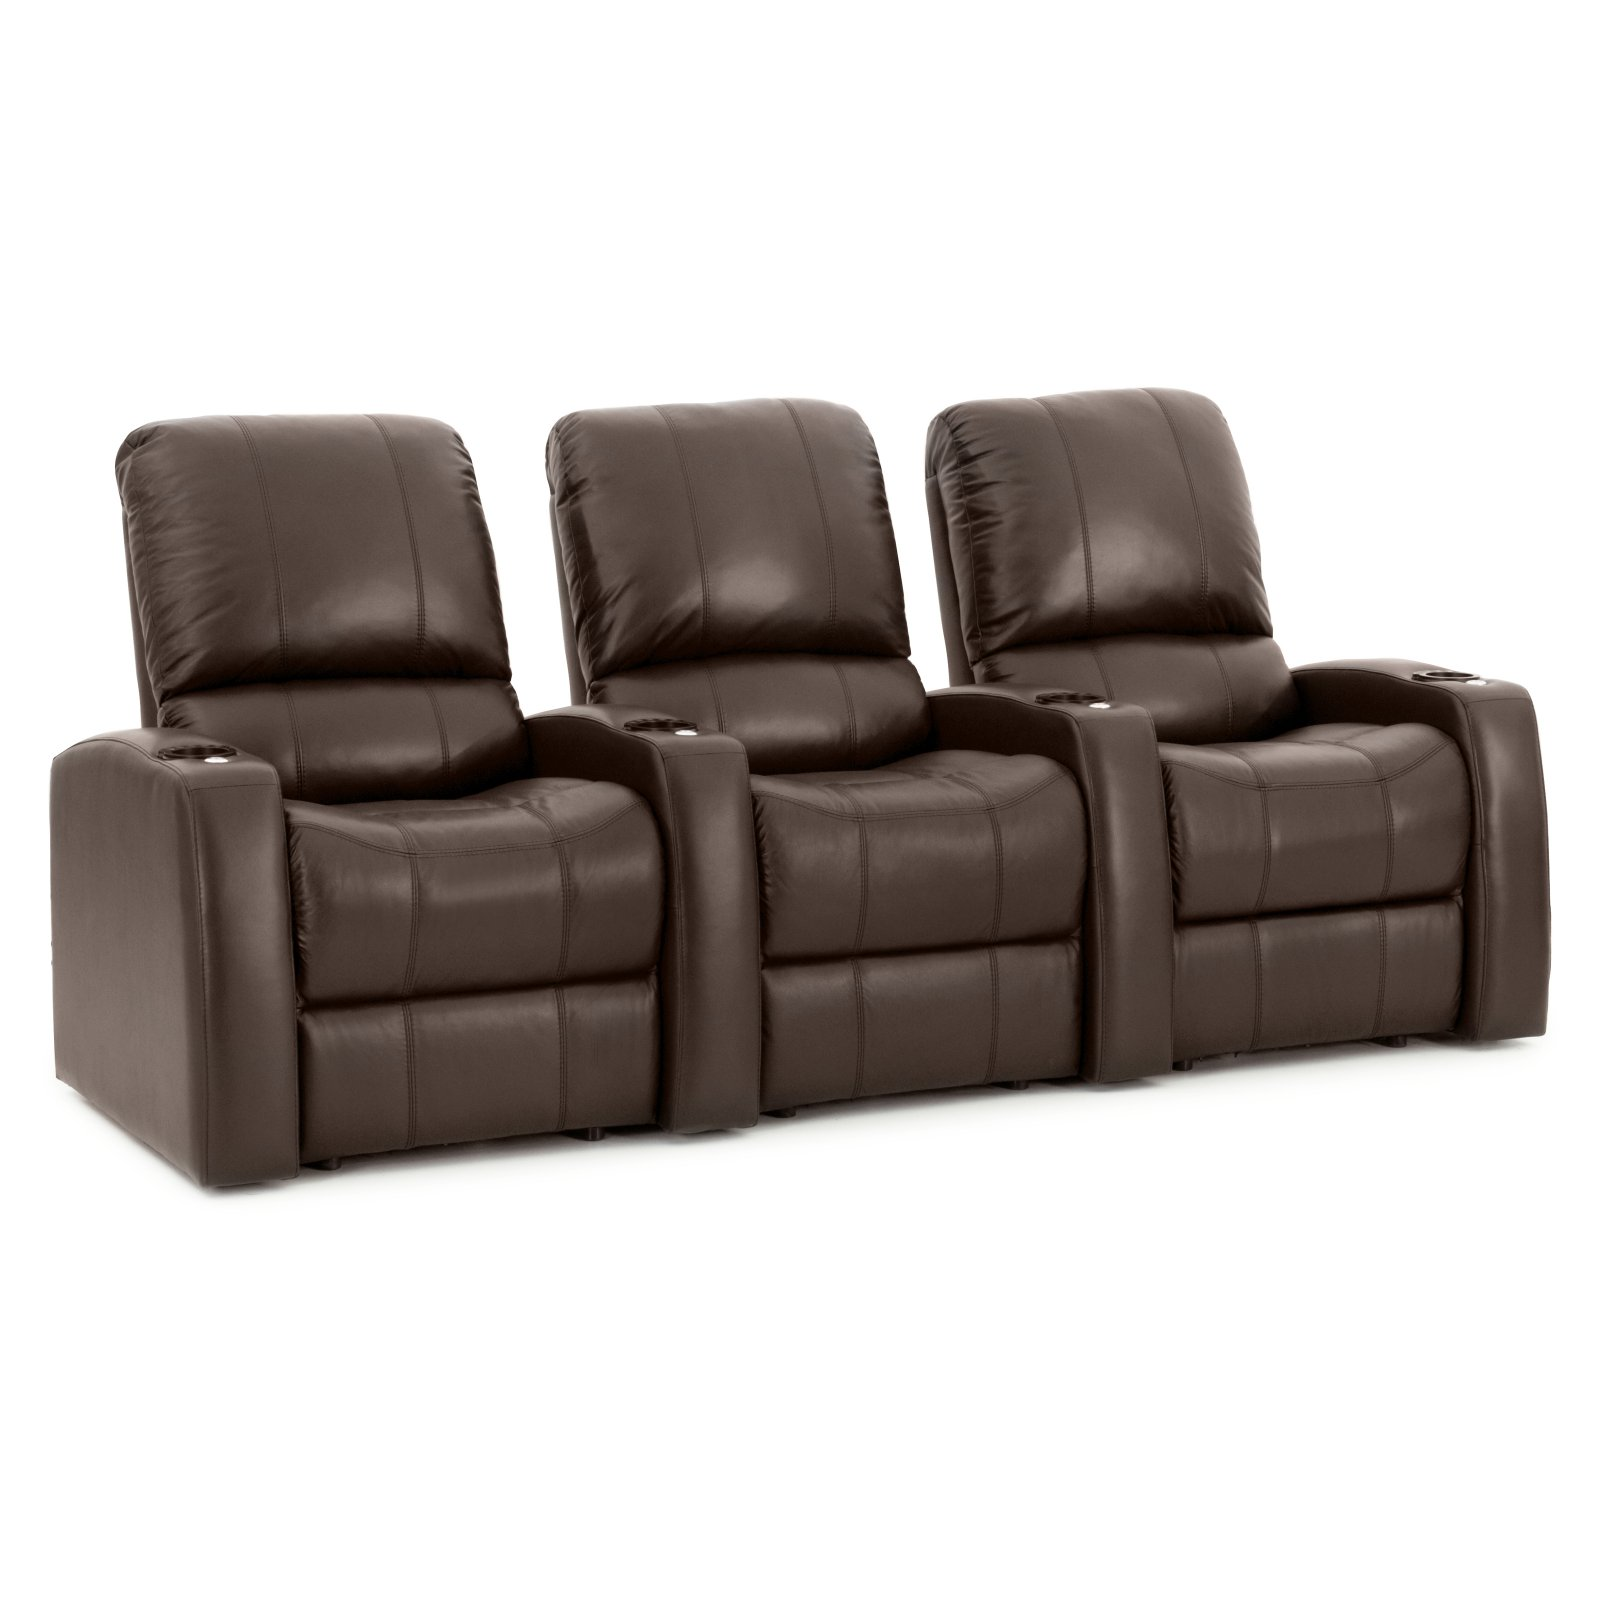 Octane Blaze XL900 3 Seater Home Theater Seating